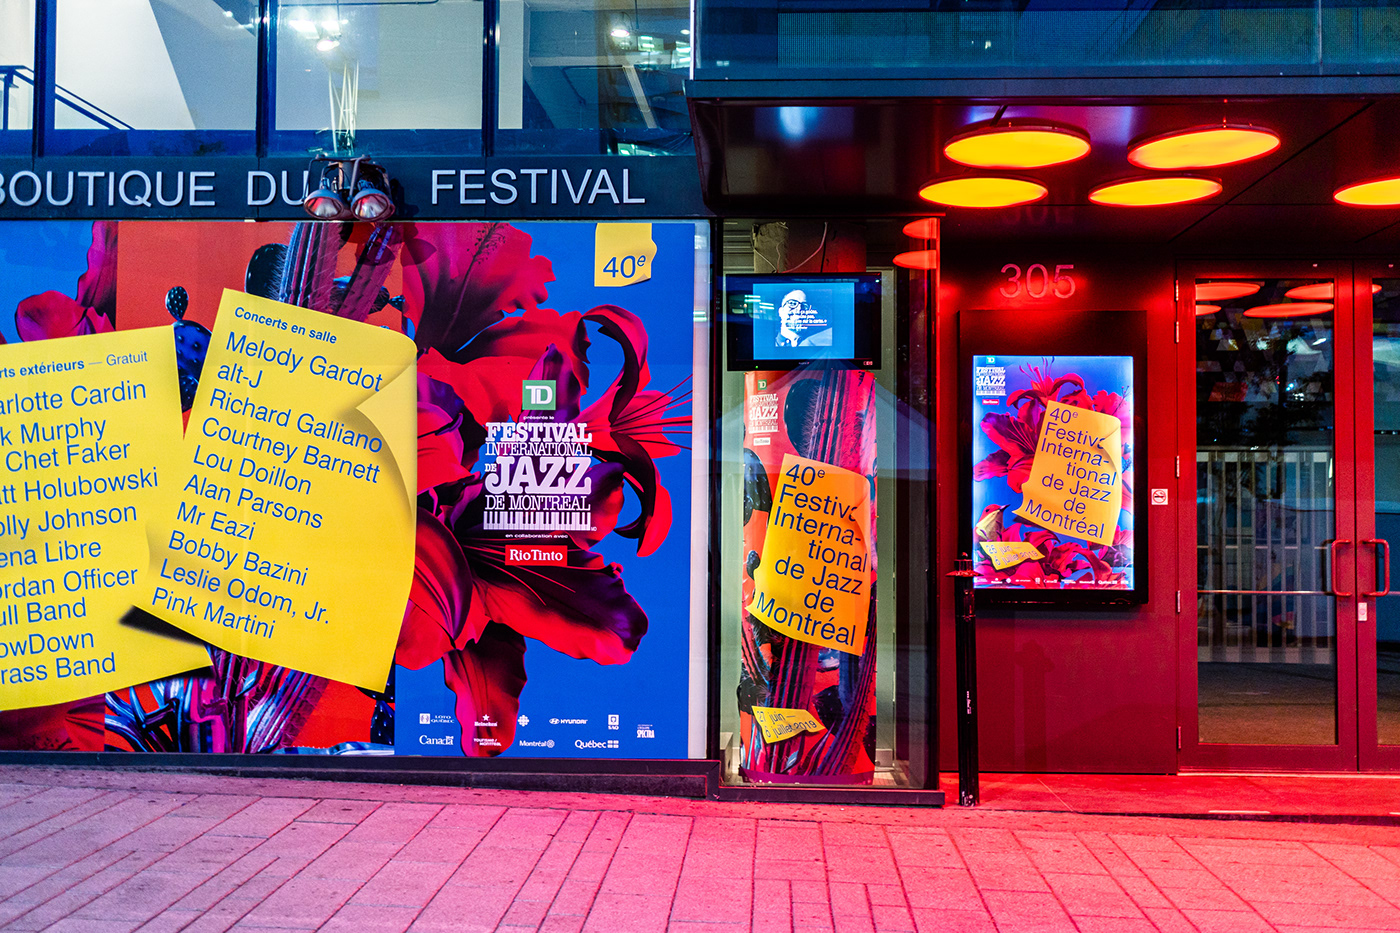 Flowers cactus red blue yellow poster festival jazz 3D music